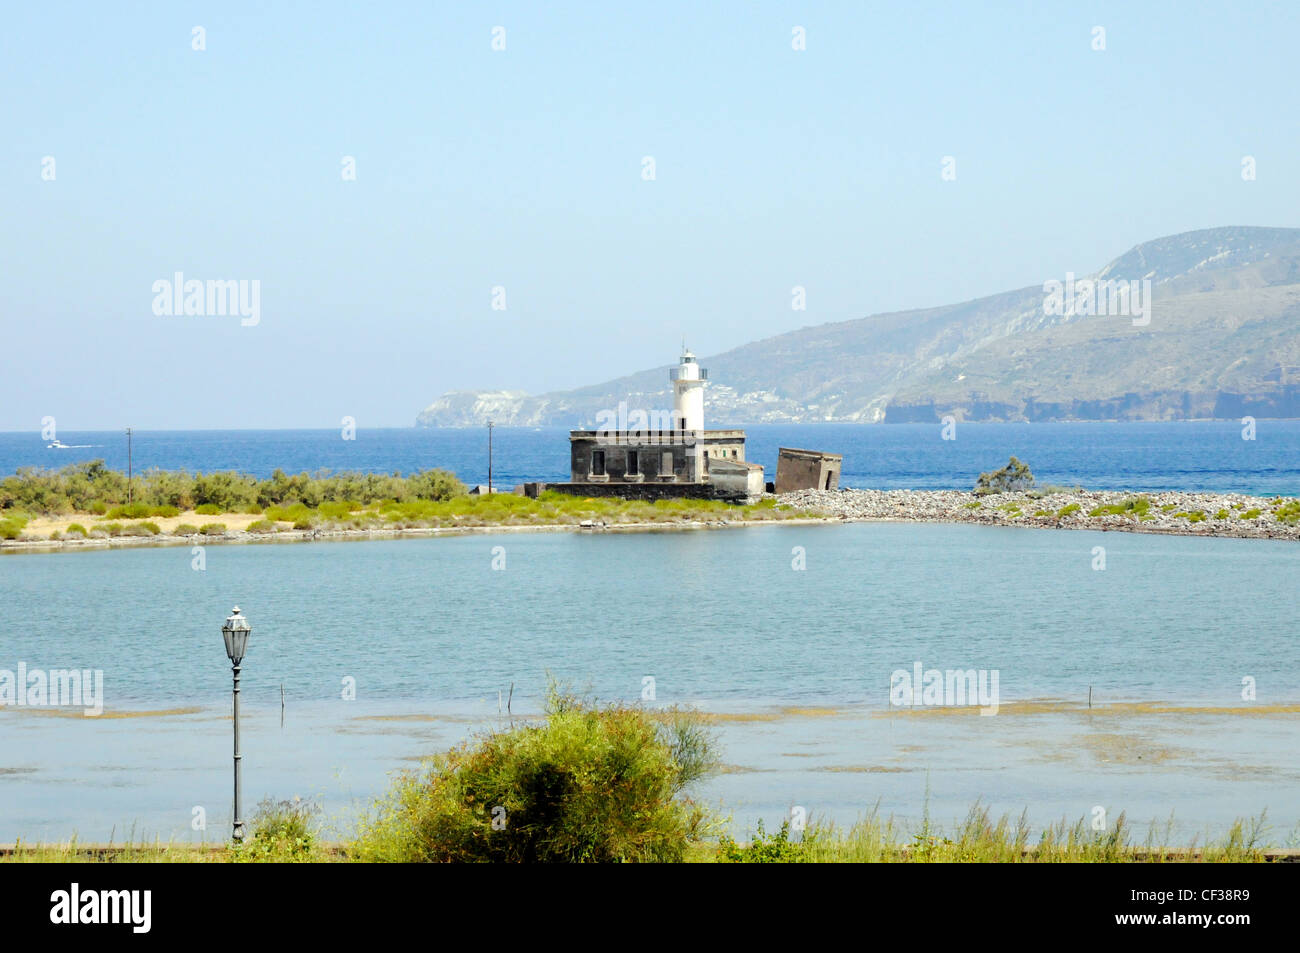 A lighthouse on the Laghetto di Lingua, or 'little salt lake', in the town of Lingua, on the Aeolian island - Stock Image